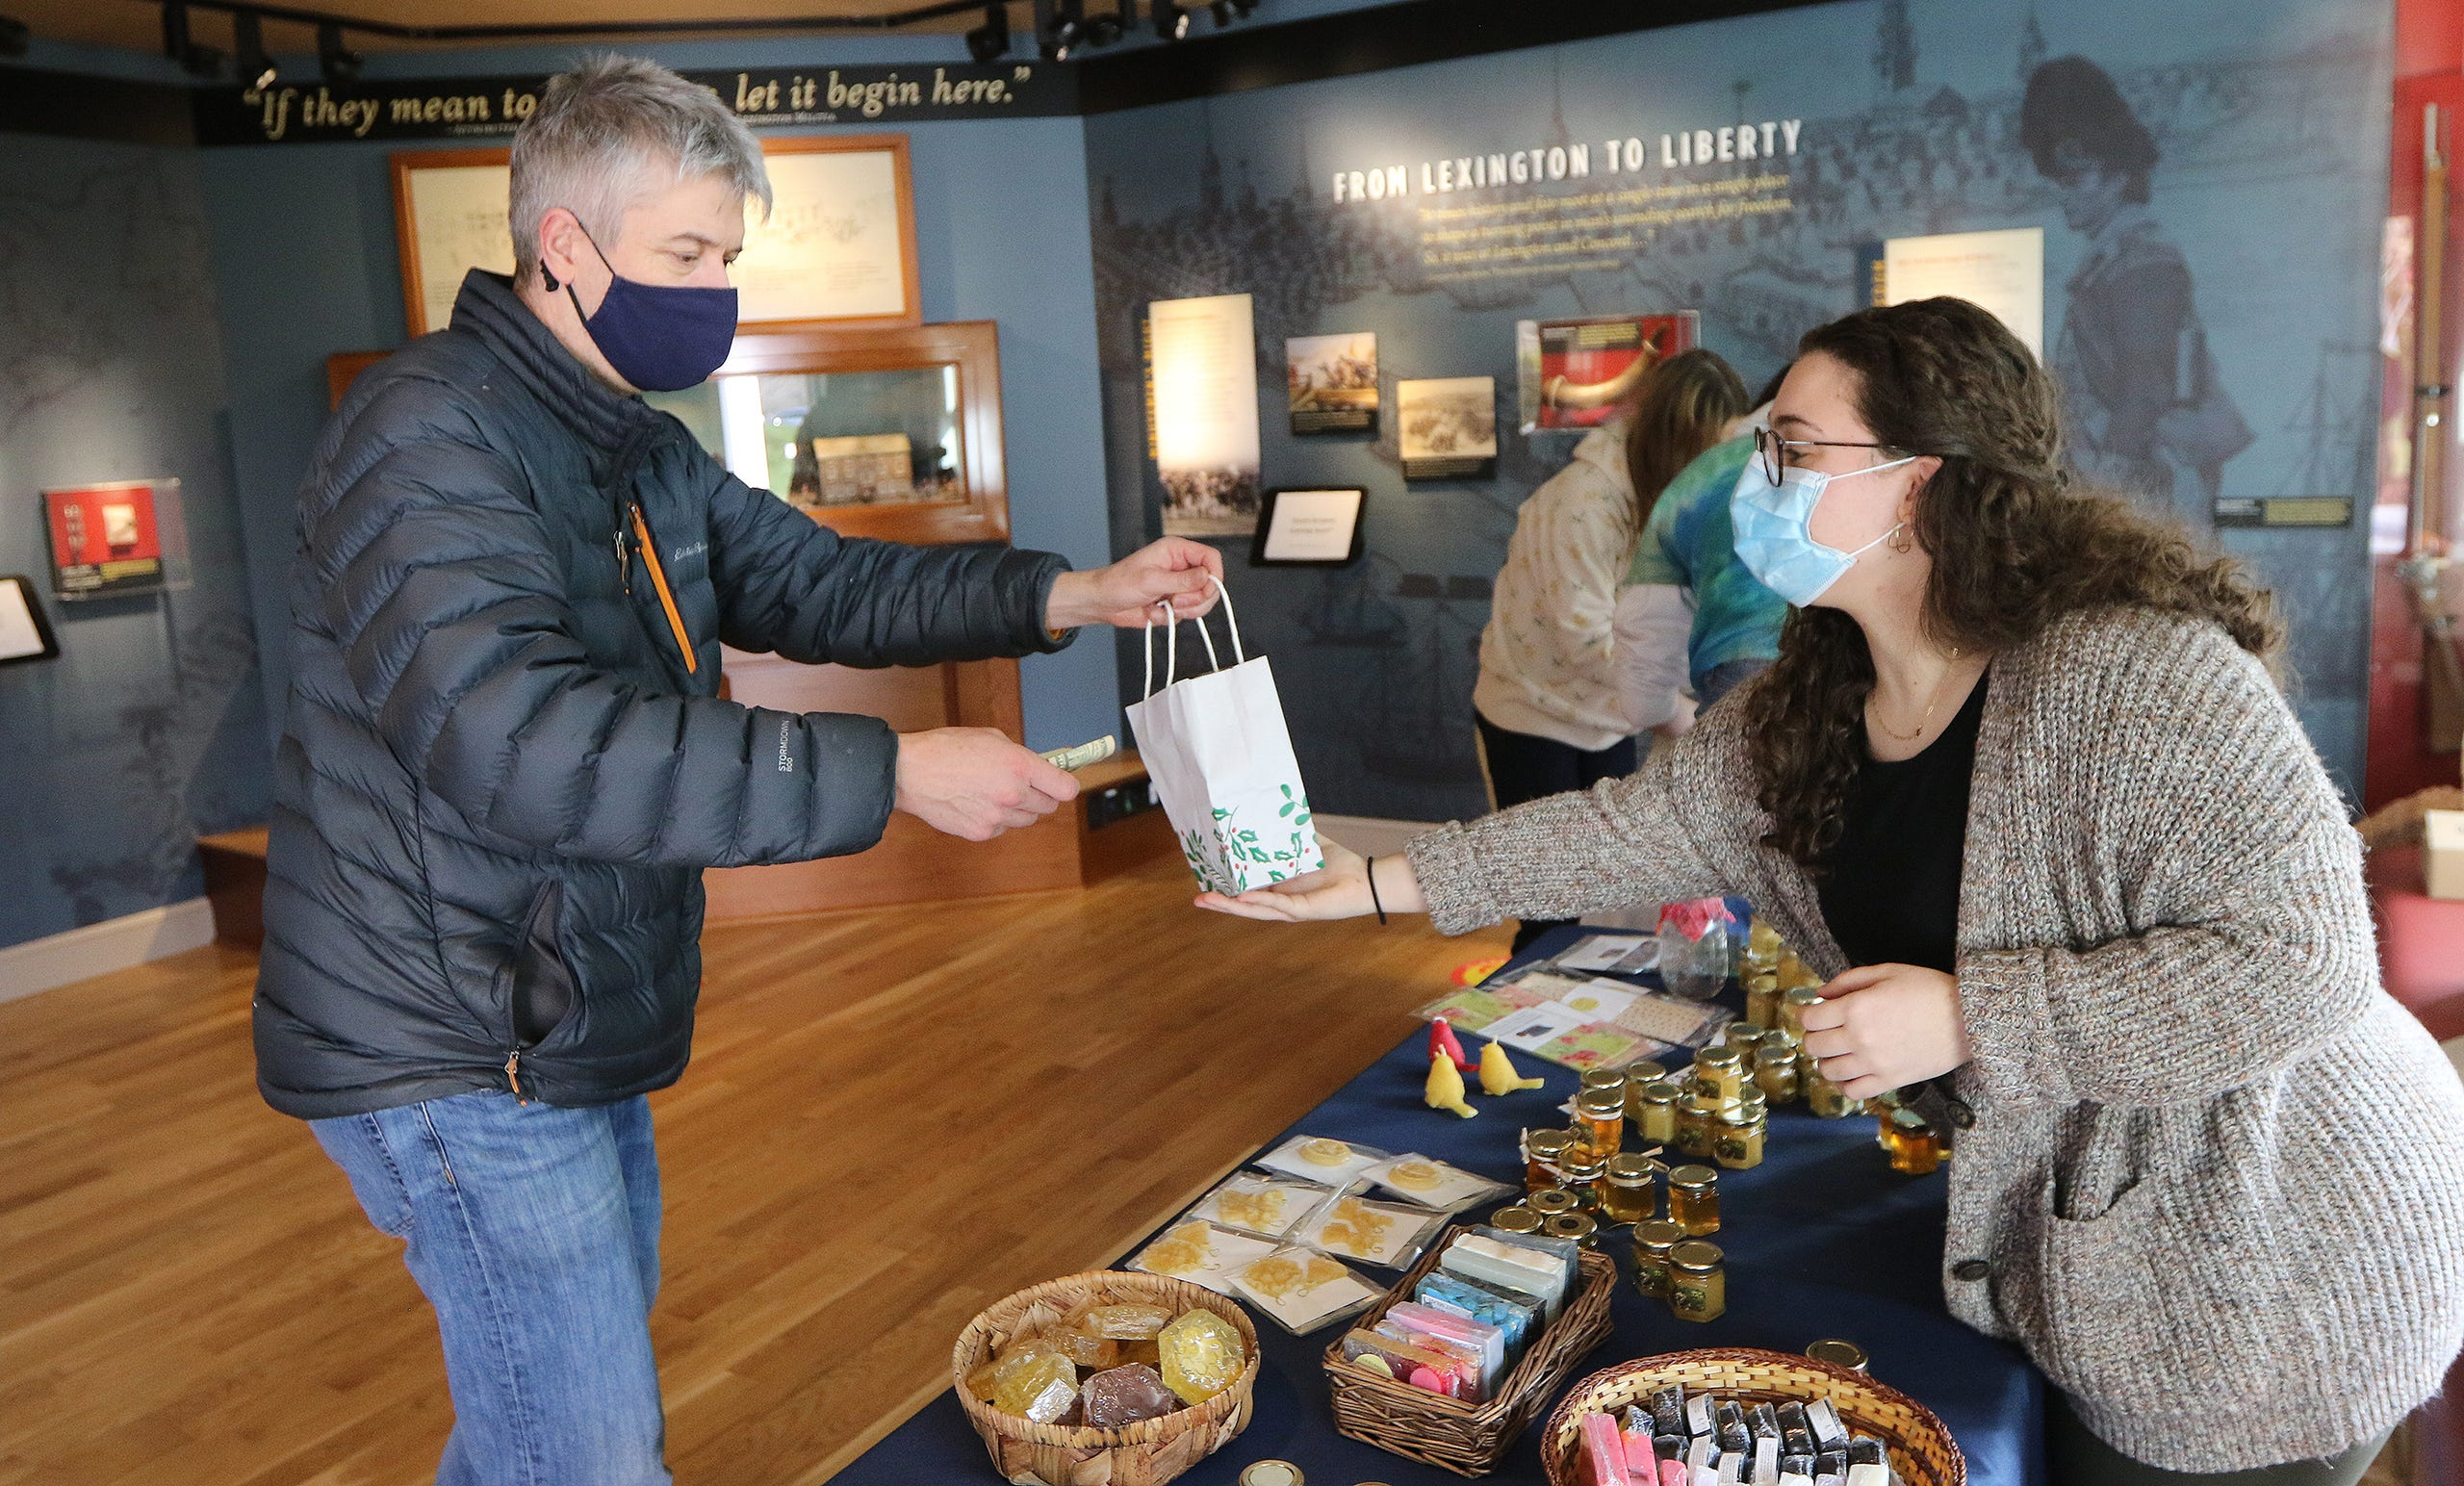 Andy Taggart, of Lexington, bought some items from Lexington High School senior Sophie Gregoretti, 17, at the Lexington Bee Company table in the Lexington Visitors Center, Nov. 28.